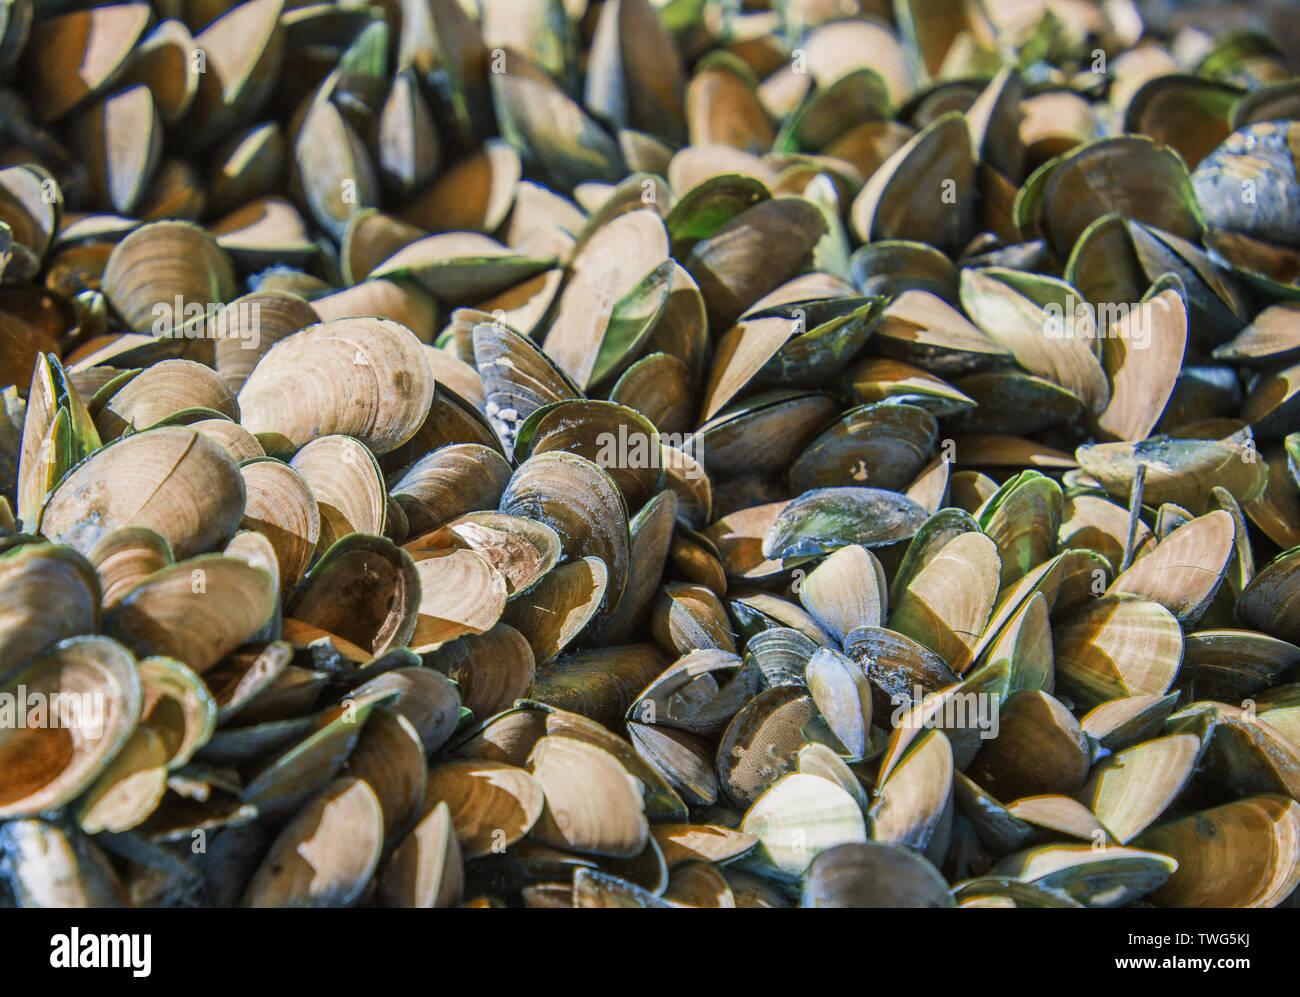 The texture of the shells of sea mollusks. - Stock Image